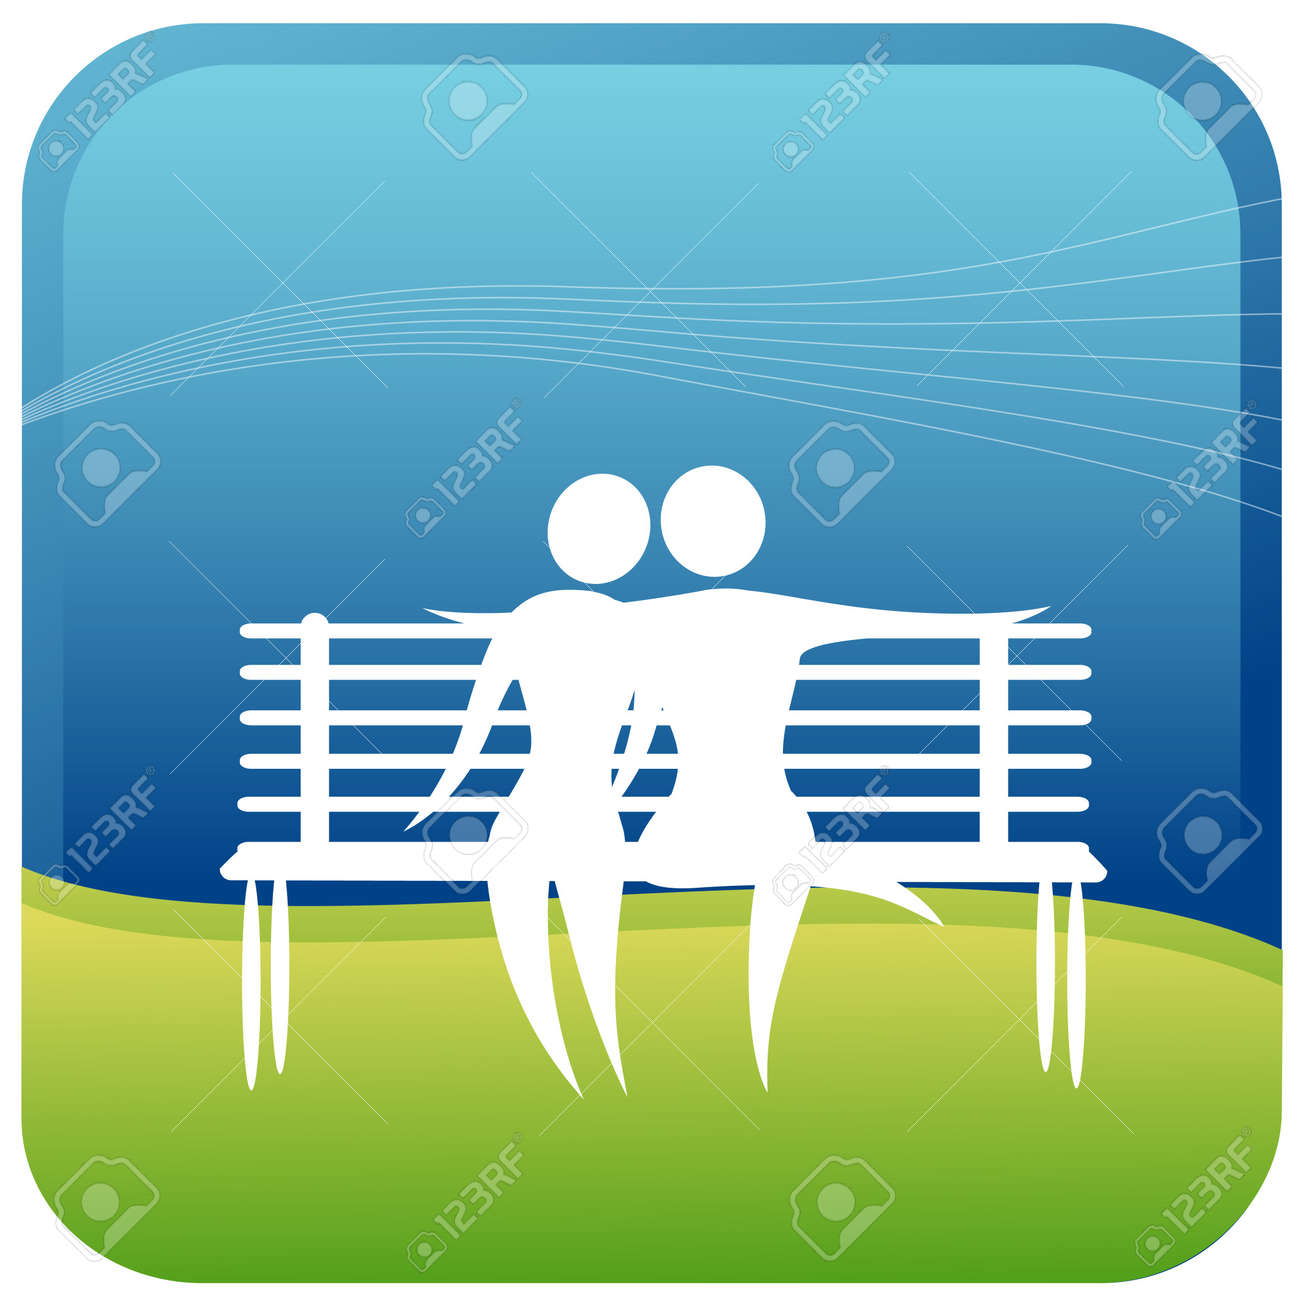 human couple embracing sitting on a park bench Stock Vector - 7596831